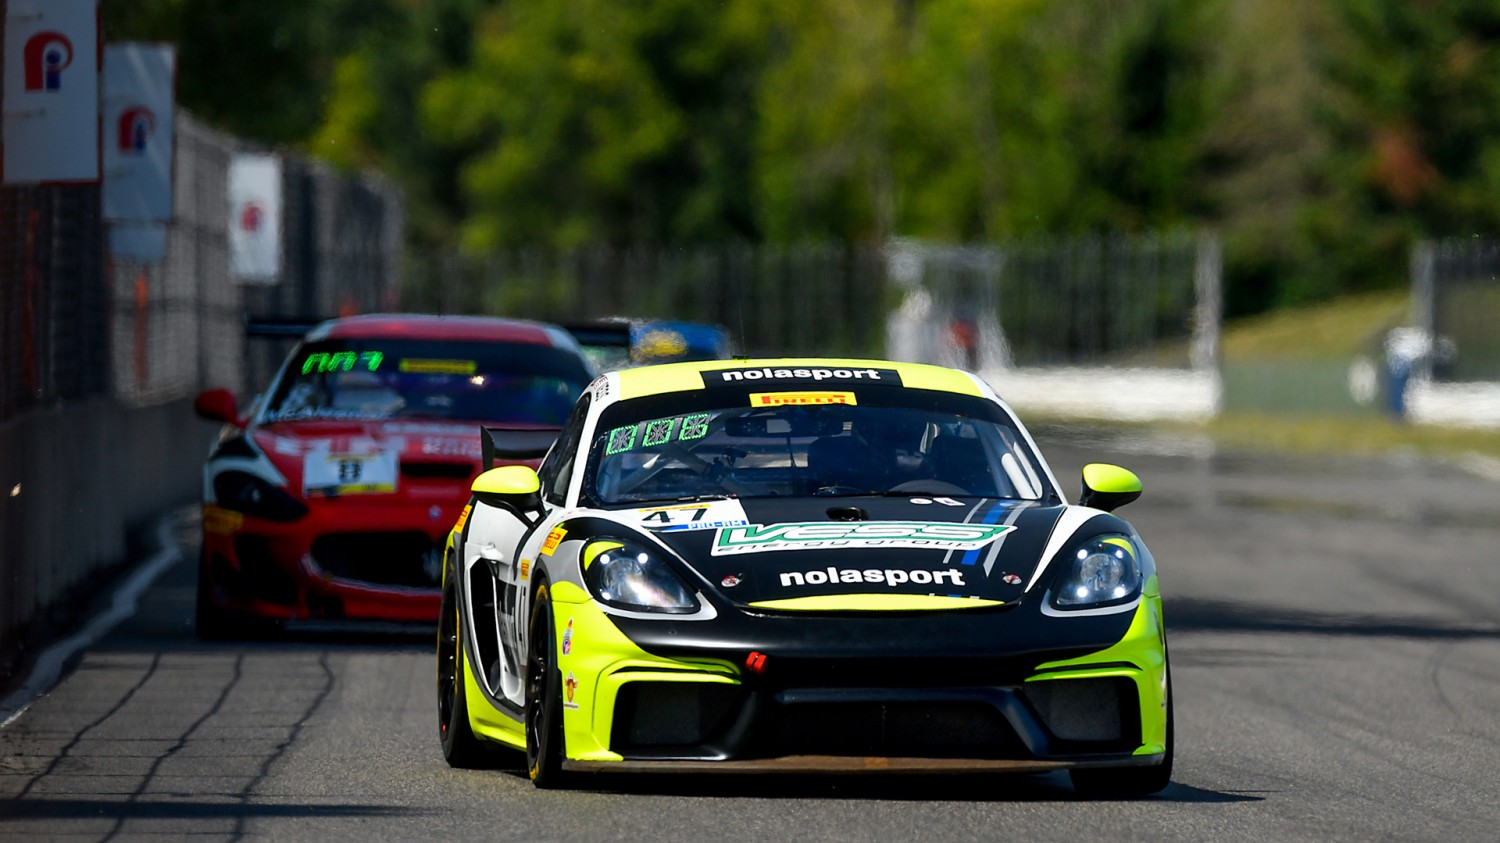 GT4 SprintX Teams prepare to charge The Glen for Next Round of Competition